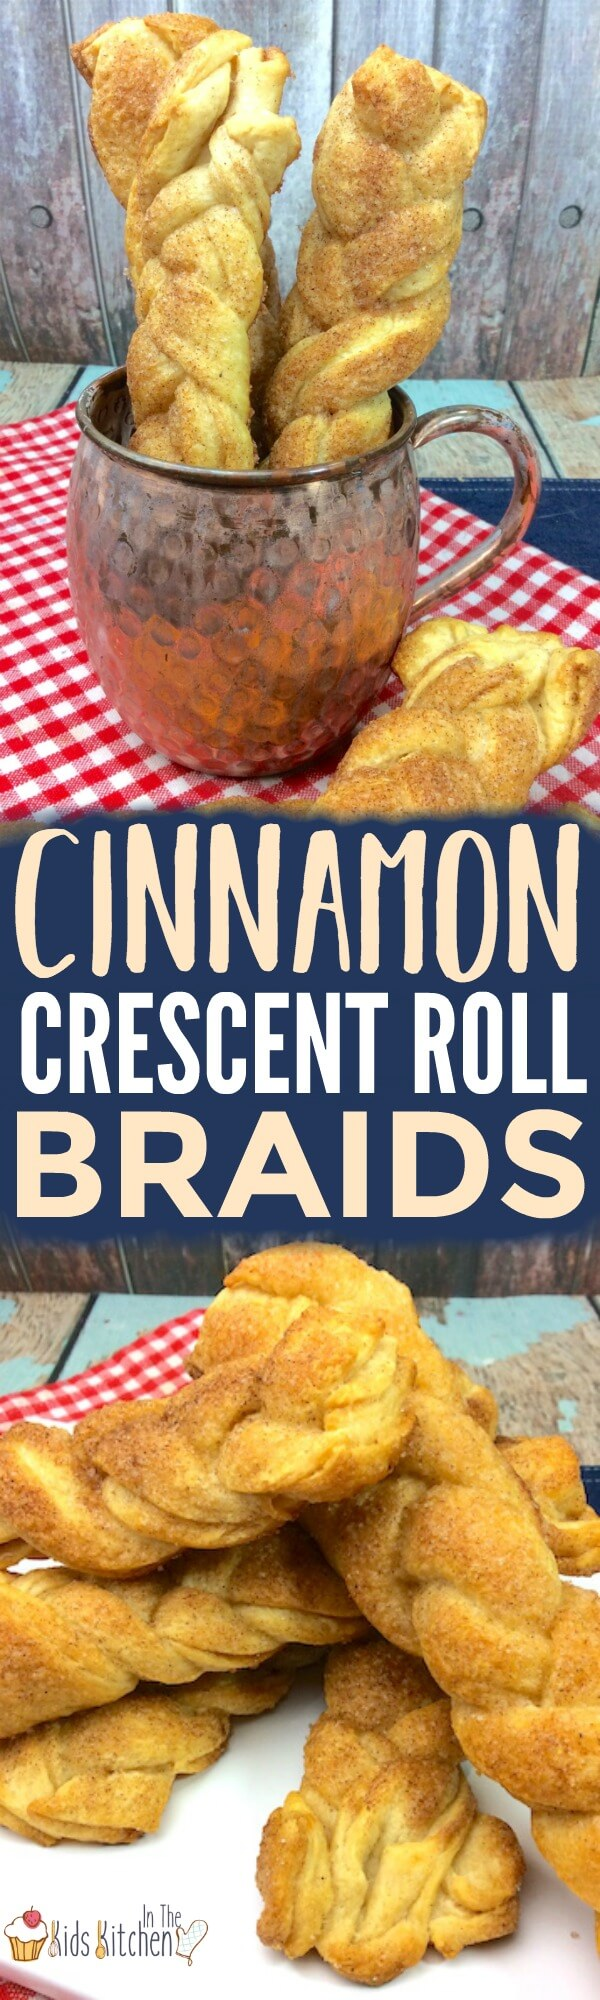 A fun twist on breakfast— the whole family will love these easy Cinnamon Crescent Roll Braids! Perfect for holidays or parties!